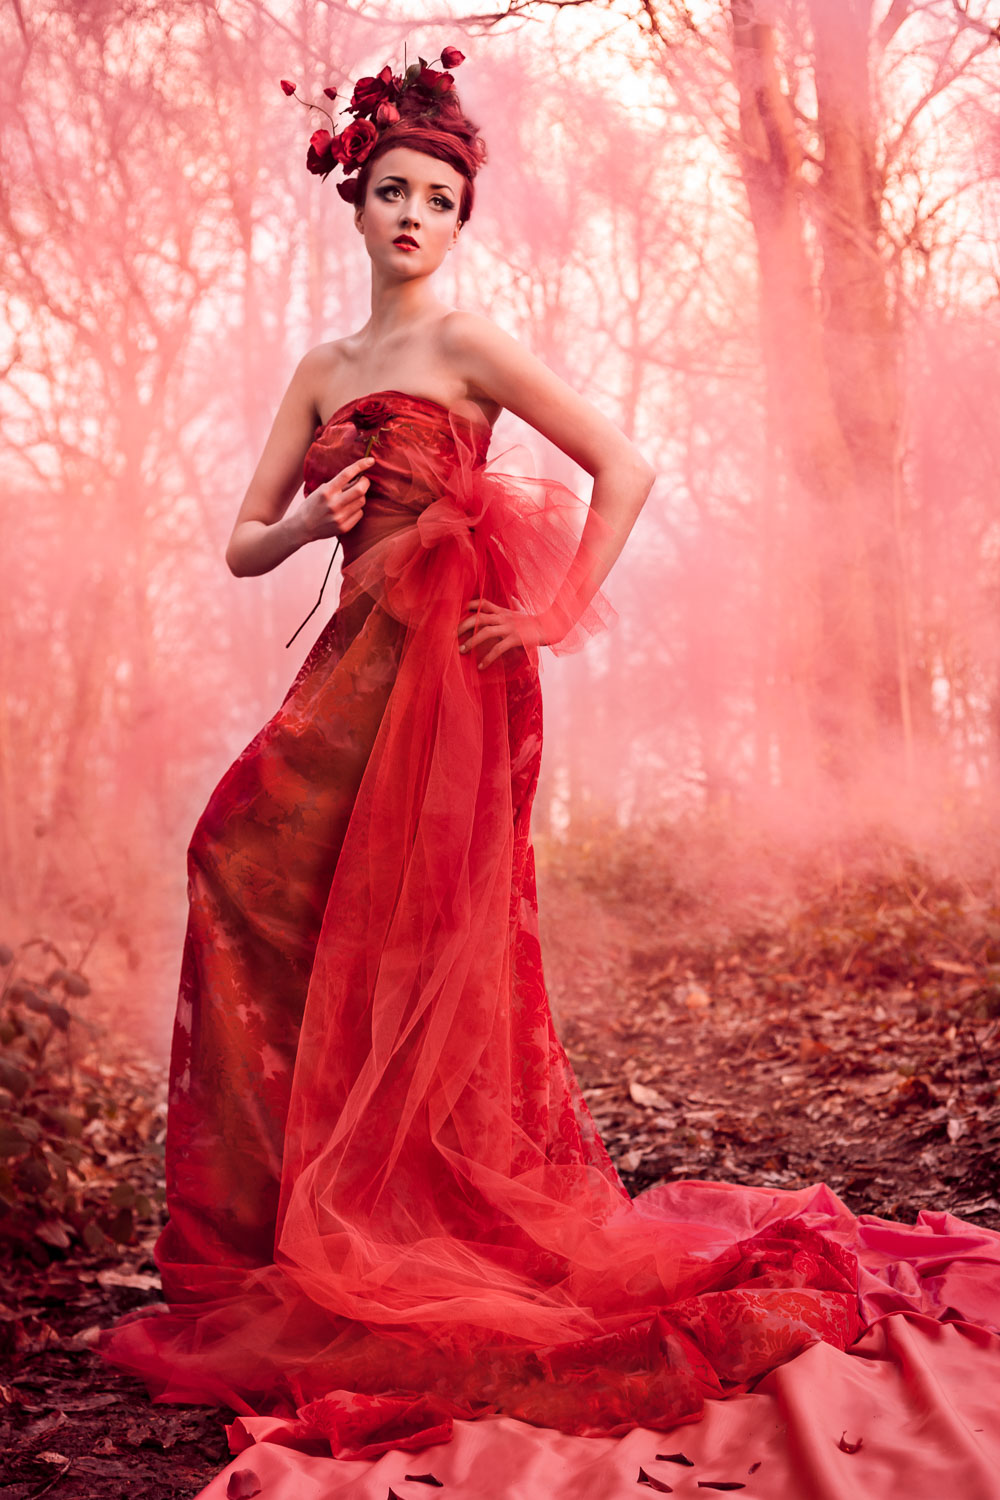 Female model dressed as a red rose wearing a red dress and rose flower headpiece in an enchanted forest with red smoke